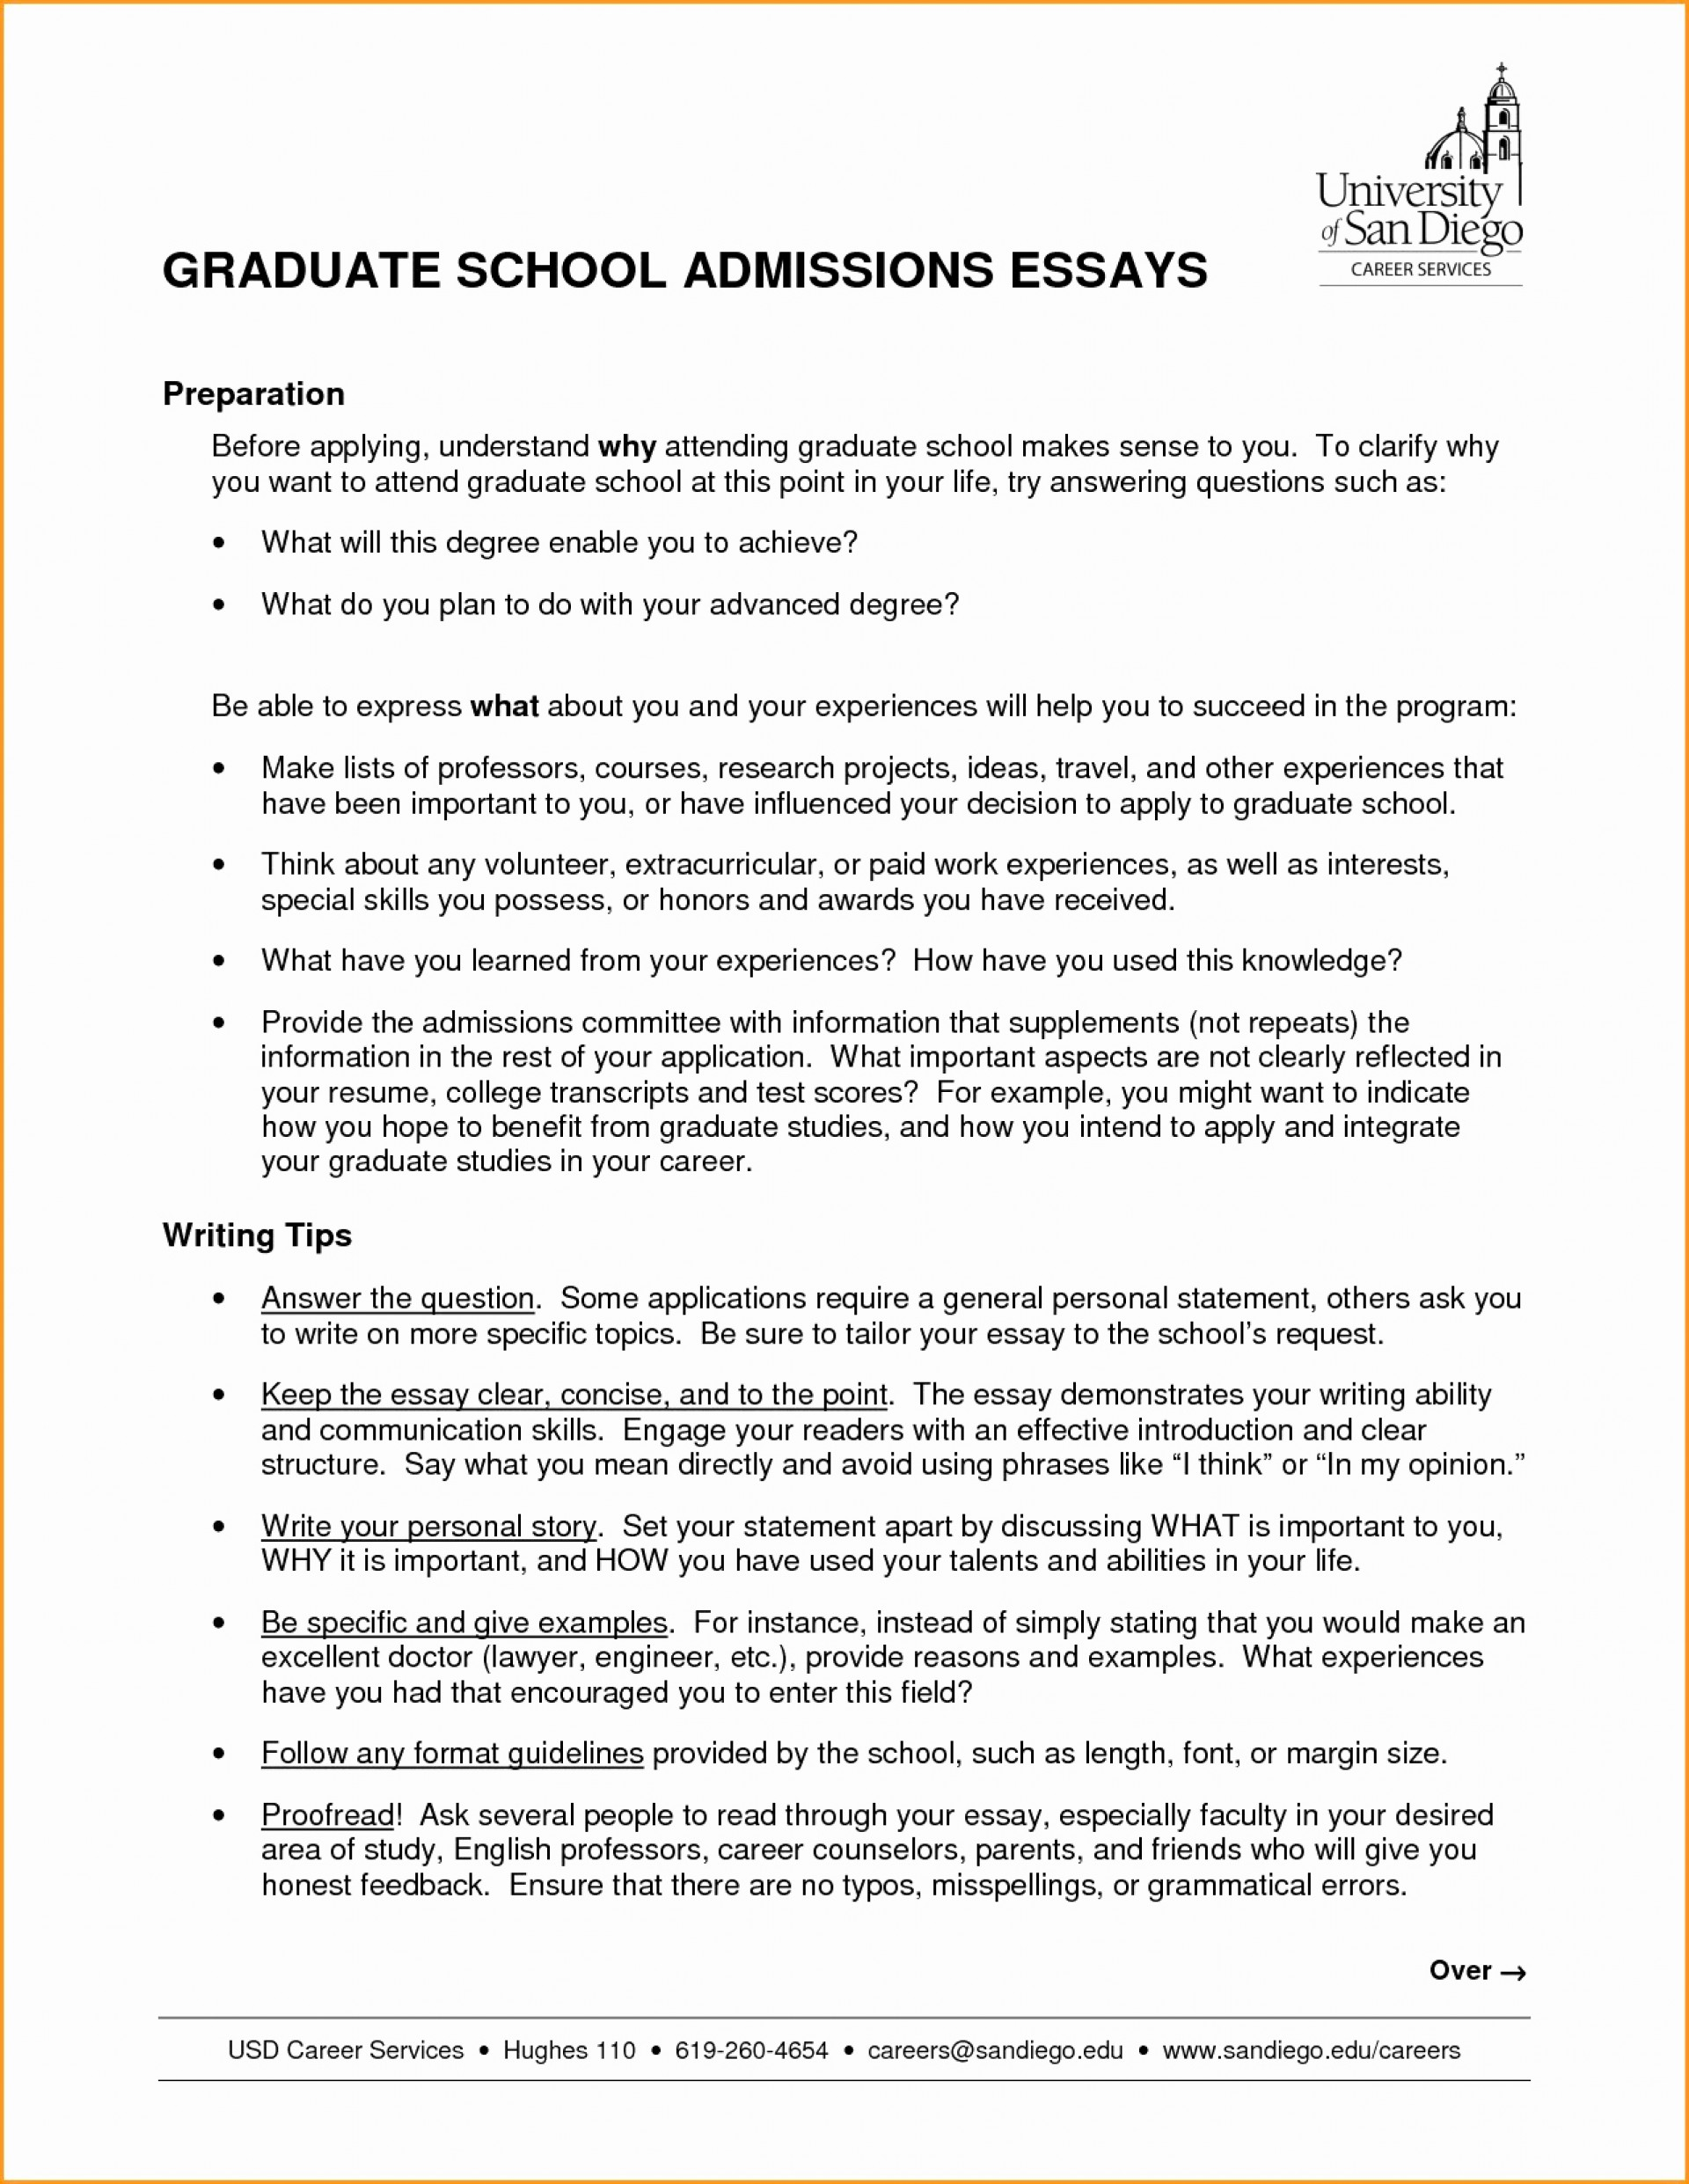 010 Nursing School Application Essay Resume For Lovely Graduate Admissions Beautiful Sk Sample Fantastic Examples Admission Format 1920